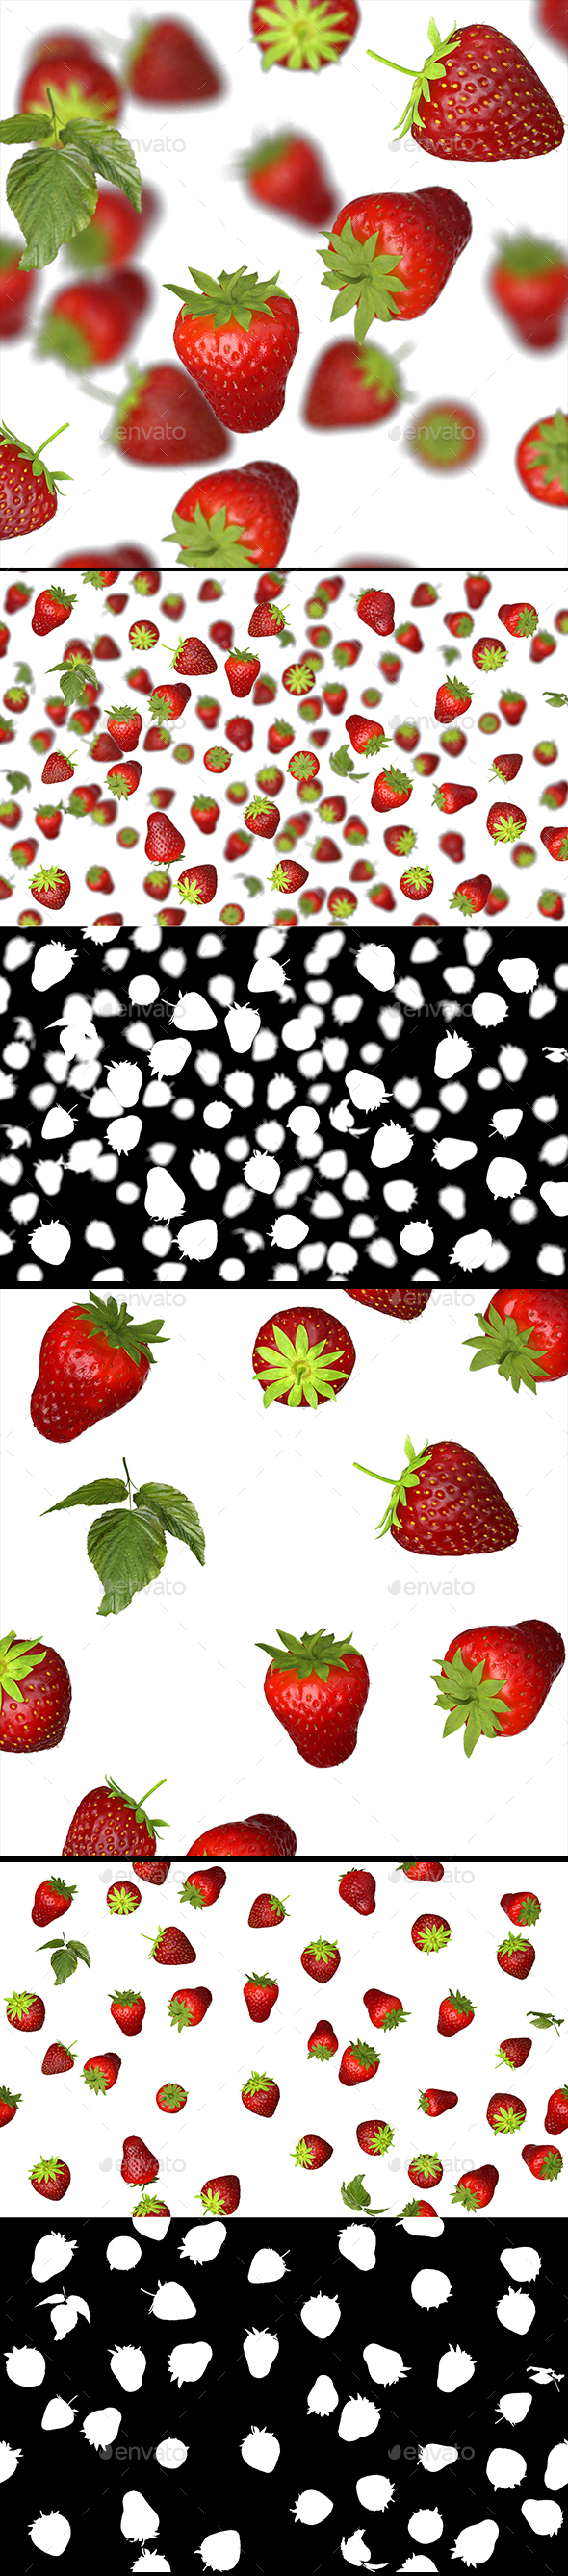 Lots of Strawberries Mini Set - 3D Backgrounds